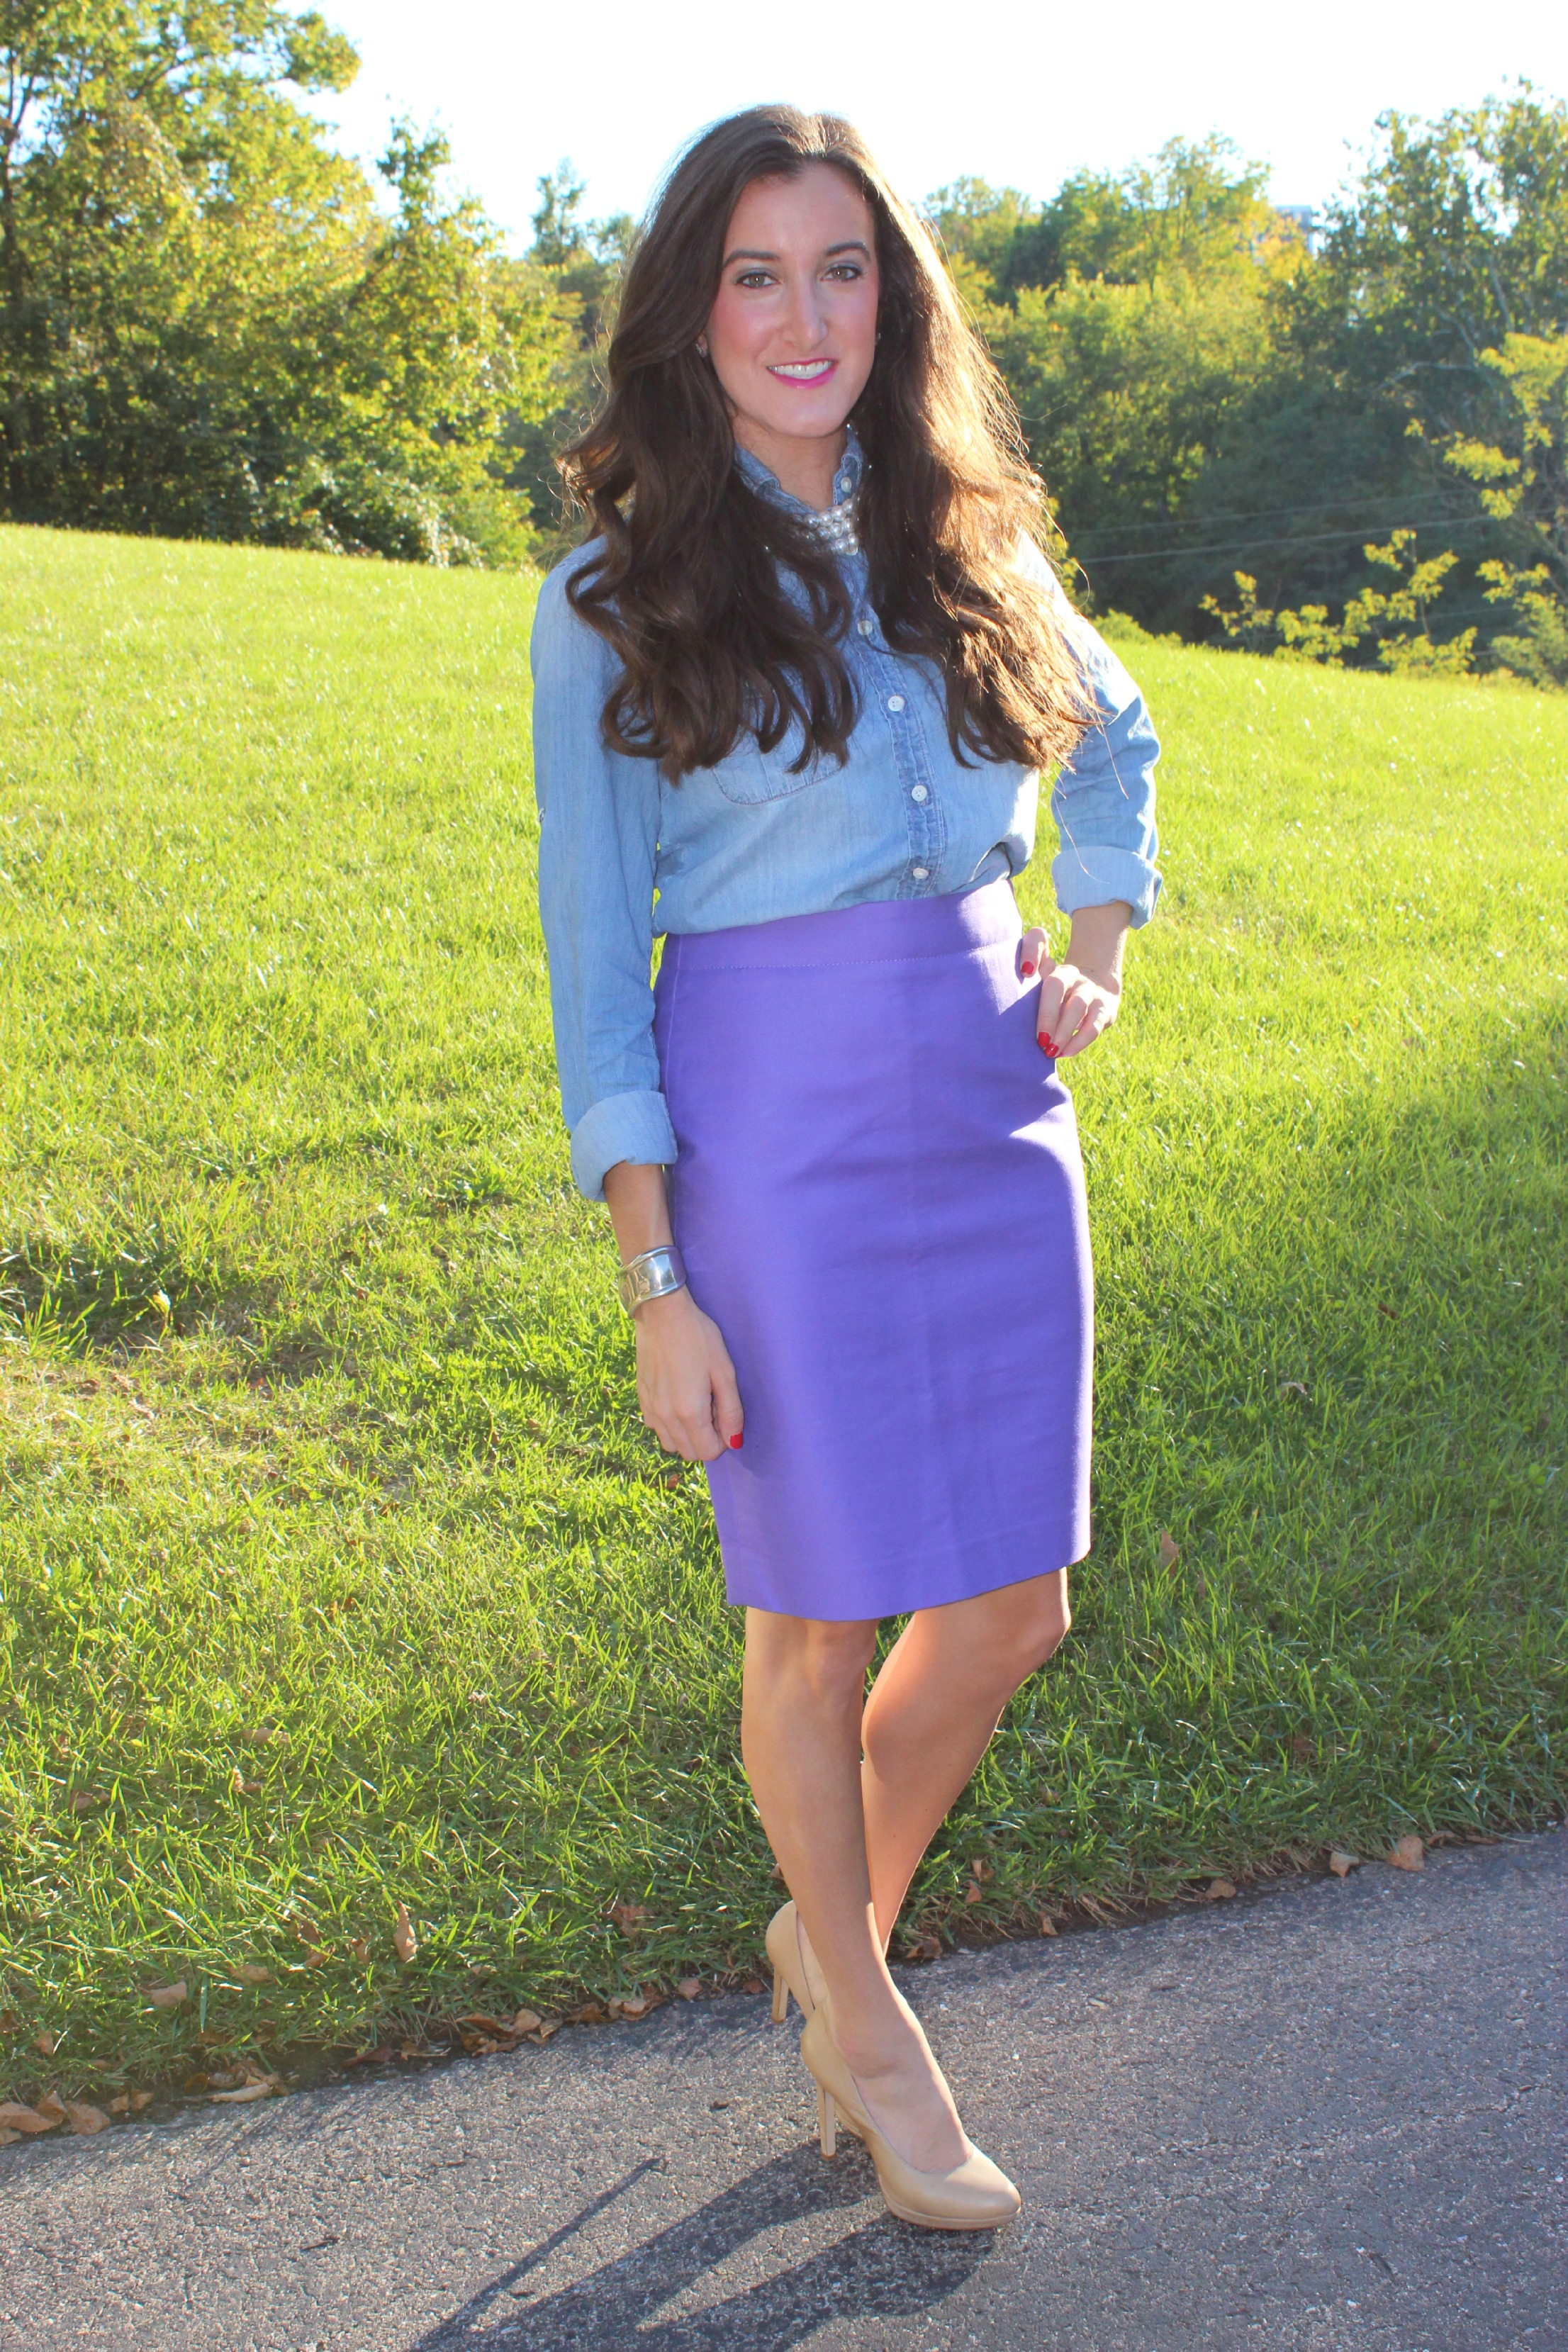 J.Crew Number 2 pencil skirt, J.Crew keeper chambray shirt